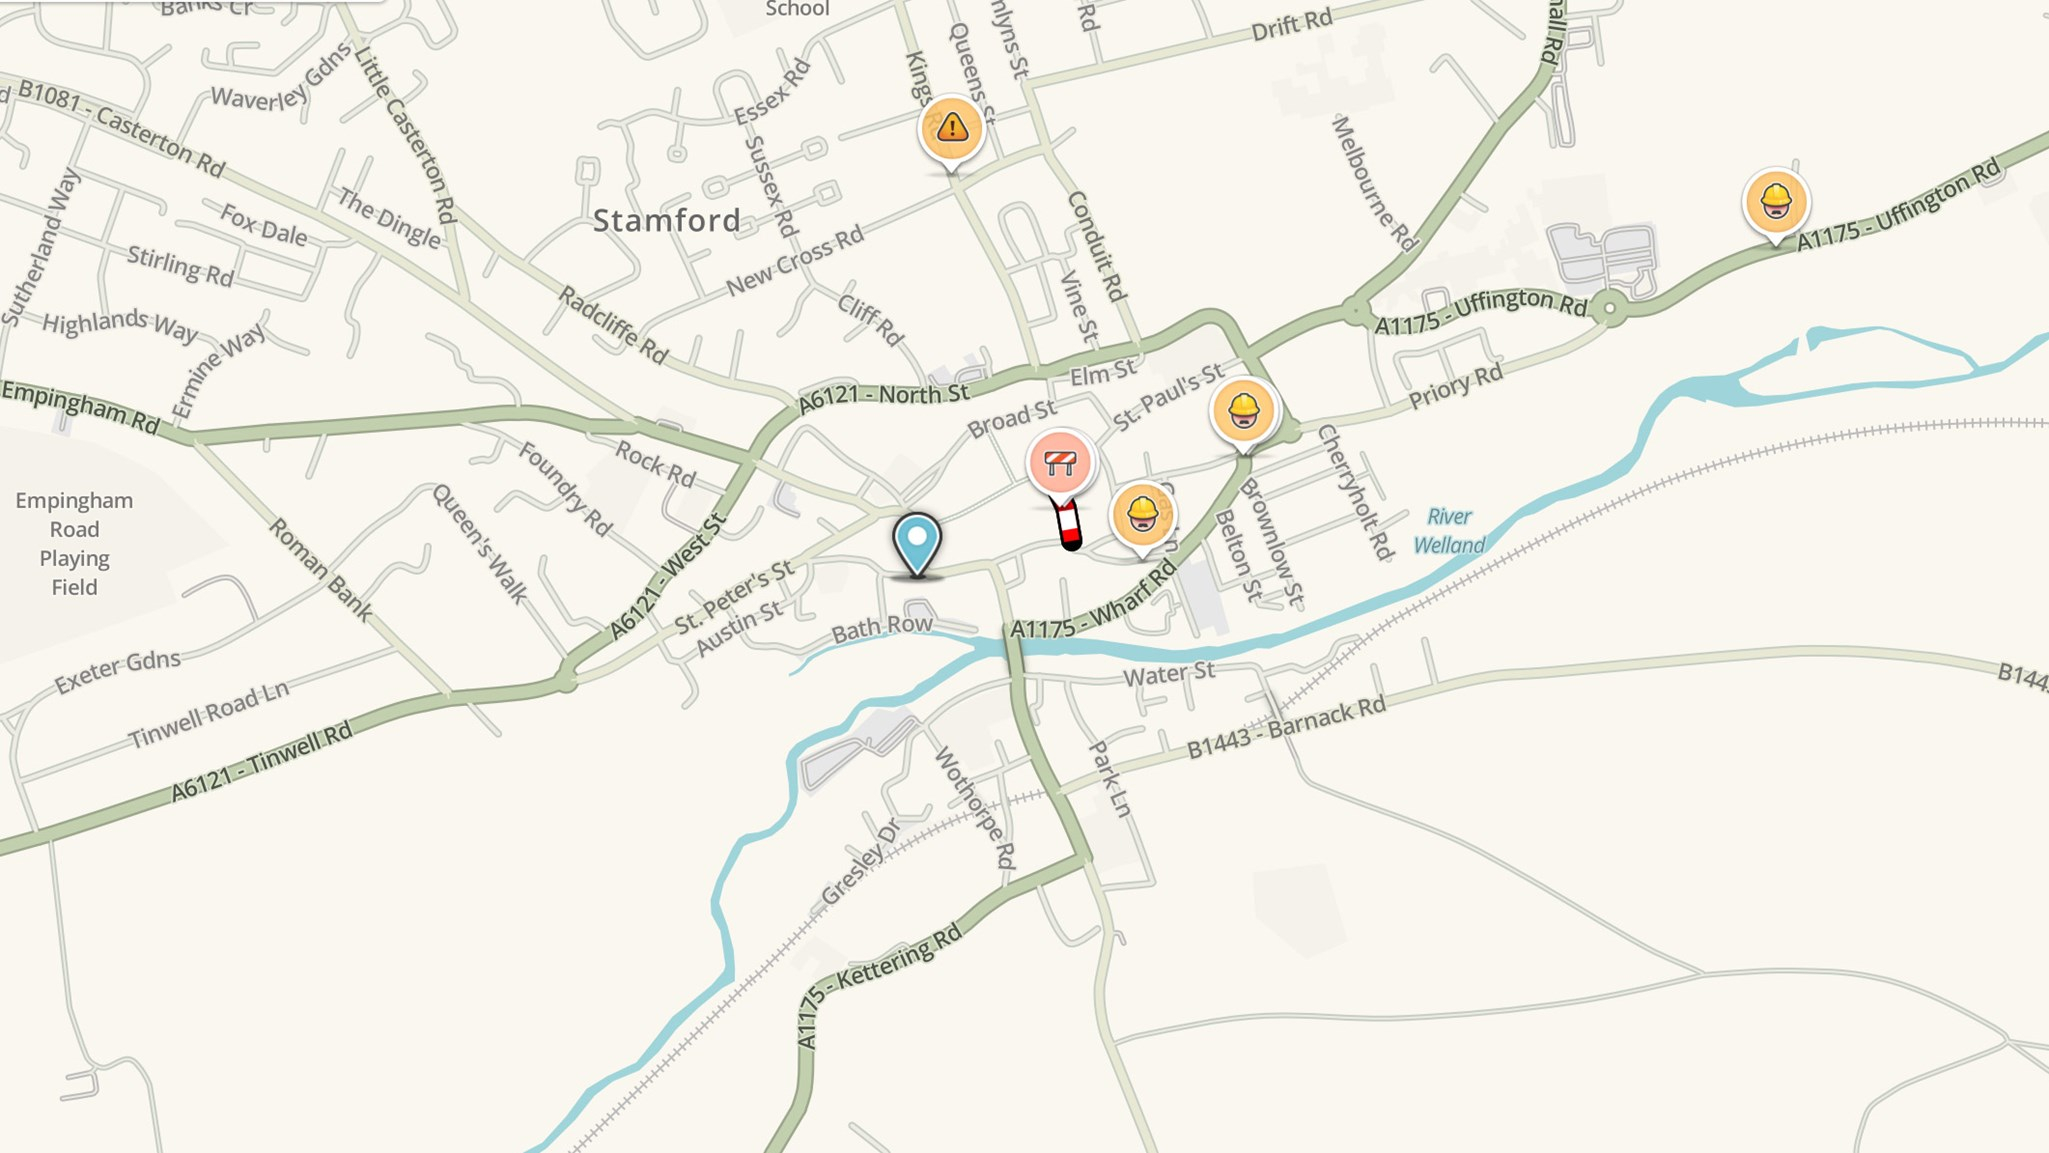 Waze: all you need to know about Google's other sat-nav app